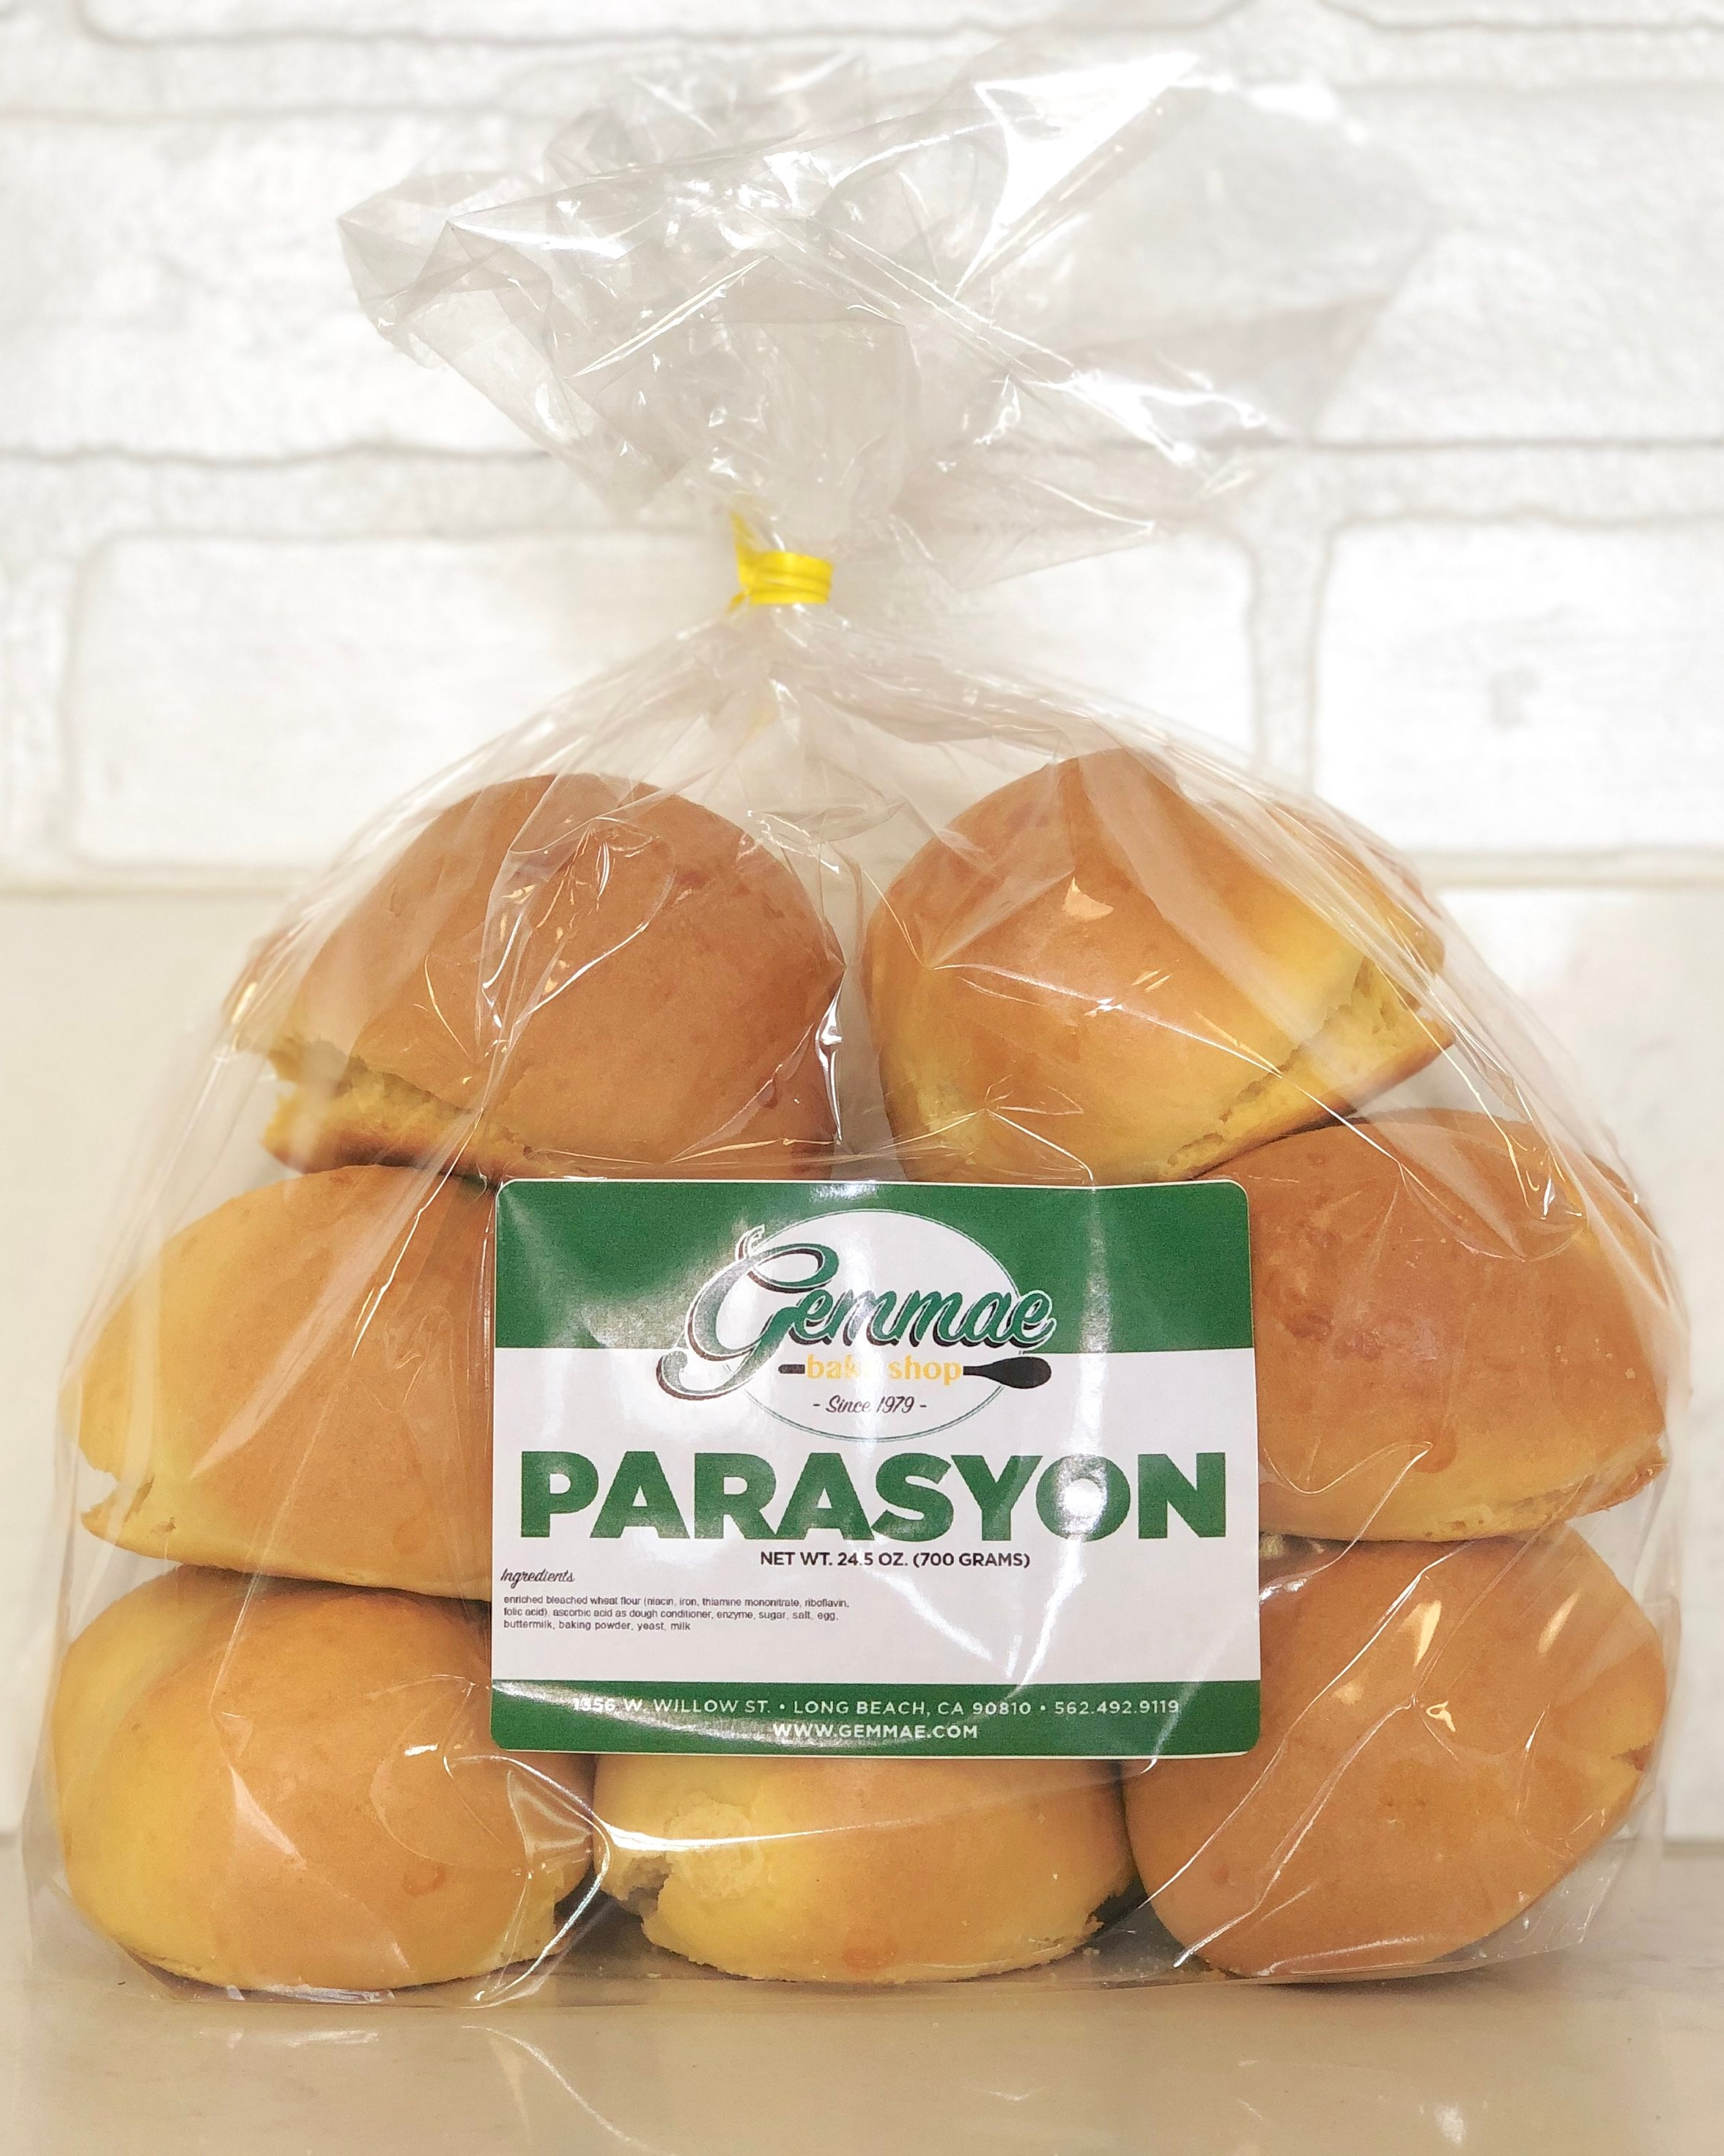 PARASYON   Sweet, dense, buttery bread buns. Each bags contains 8 buns. Best when toasted.